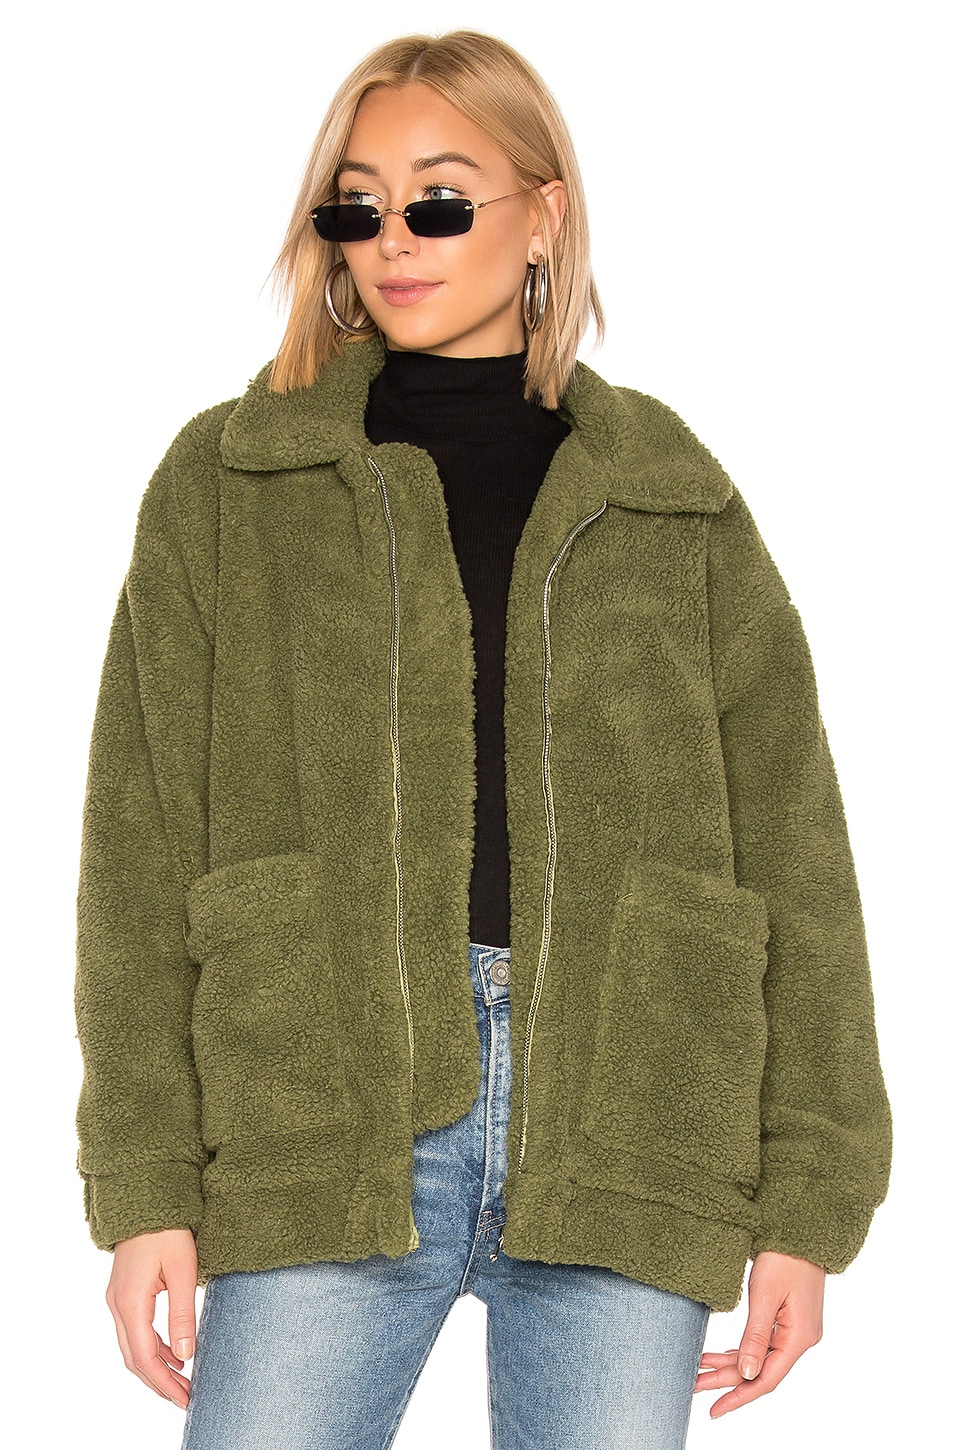 I.AM.GIA Pixie Jacket in Khaki